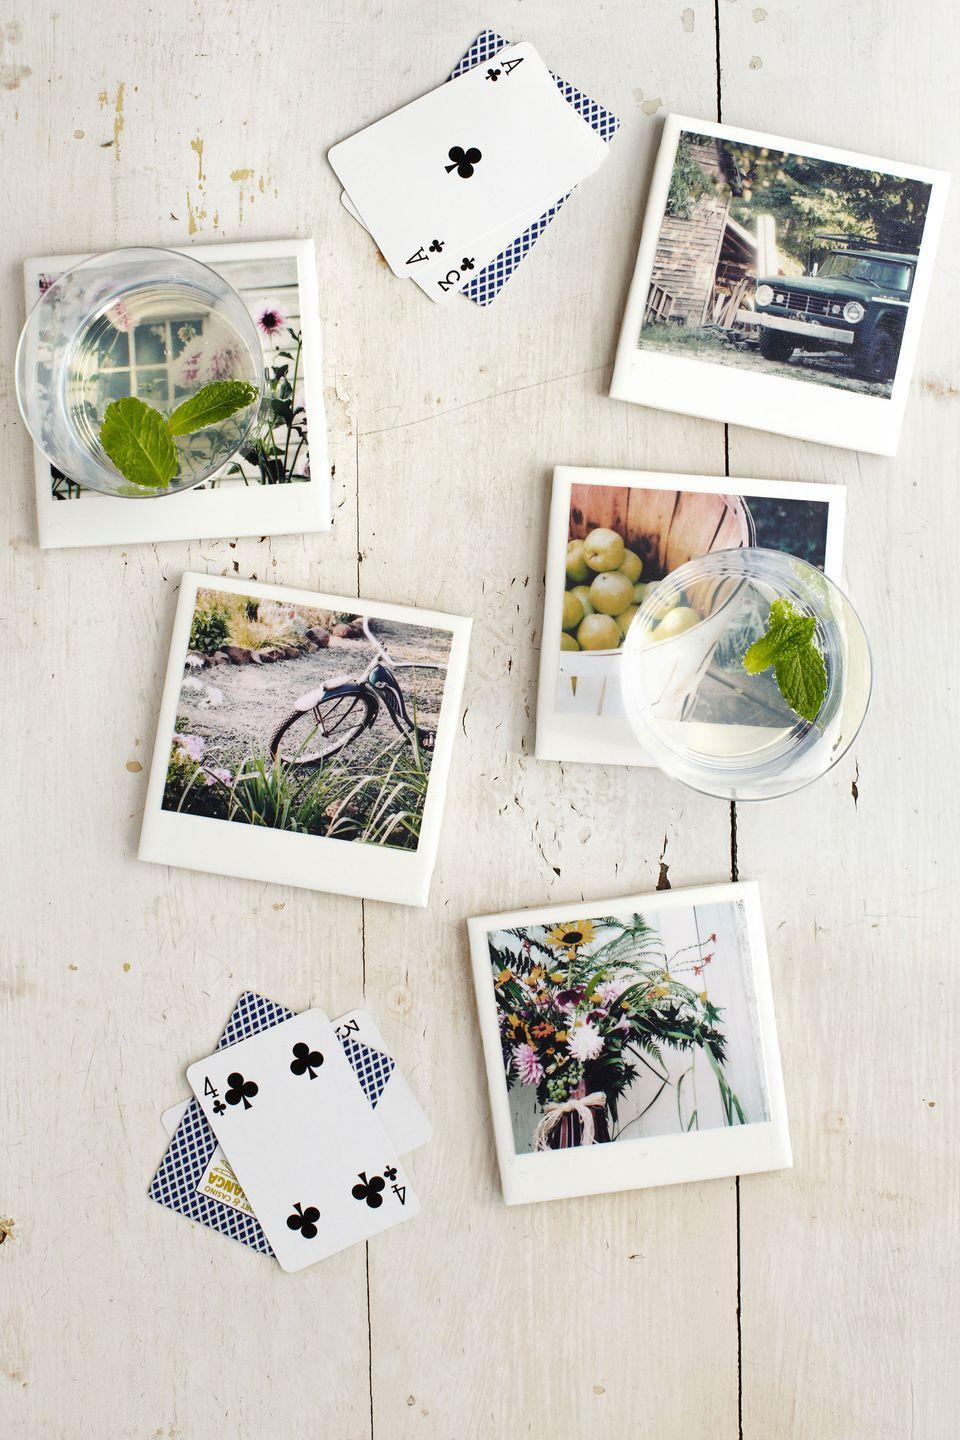 """<p>Refocus plain ceramic tiles as snappy coasters. Blogger Brittany Moser of <a href=""""http://www.darkroomanddearly.com"""" rel=""""nofollow noopener"""" target=""""_blank"""" data-ylk=""""slk:darkroomanddearly.com"""" class=""""link rapid-noclick-resp"""">darkroomanddearly.com</a> made these Polaroid-inspired drink rests from color photos and square tiles (a steal at 98 cents apiece). First, trim a photo to 3 3/4""""W x 3 1/4""""H. Using a foam brush, spread <a href=""""https://www.amazon.com/Mod-Podge-Waterbase-8-Ounce-CS11301/dp/B000HWY6EM?tag=syn-yahoo-20&ascsubtag=%5Bartid%7C10050.g.645%5Bsrc%7Cyahoo-us"""" rel=""""nofollow noopener"""" target=""""_blank"""" data-ylk=""""slk:Mod Podge"""" class=""""link rapid-noclick-resp"""">Mod Podge</a> on the back of the image; then position it on <a href=""""https://go.redirectingat.com?id=74968X1596630&url=http%3A%2F%2Fwww.homedepot.com%2Fp%2FMerola-Tile-Twist-Square-White-Ice-3-3-4-in-x-3-3-4-in-Ceramic-Wall-Tile-WRC4TWWI%2F205703723&sref=https%3A%2F%2Fwww.countryliving.com%2Fdiy-crafts%2Ftips%2Fg645%2Fcrafty-christmas-presents-ideas%2F"""" rel=""""nofollow noopener"""" target=""""_blank"""" data-ylk=""""slk:a tile"""" class=""""link rapid-noclick-resp"""">a tile</a>, leaving a 1/4-inch border at the top and sides, and a 3/4-inch border at the bottom. Let dry for 30 minutes. Spread Mod Podge over the photo and exposed tile borders and let dry for one hour; repeat two to three more times. Spray with clear sealant and let dry for 24 hours. Finally, affix <a href=""""https://www.amazon.com/Waxman-Self-Stick-Round-Brown-8-Inch/dp/B000VYN7CS?tag=syn-yahoo-20&ascsubtag=%5Bartid%7C10050.g.645%5Bsrc%7Cyahoo-us"""" rel=""""nofollow noopener"""" target=""""_blank"""" data-ylk=""""slk:adhesive felt pads"""" class=""""link rapid-noclick-resp"""">adhesive felt pads</a> to the underside corners of your picture-perfect tiles.</p><p><strong><a class=""""link rapid-noclick-resp"""" href=""""https://go.redirectingat.com?id=74968X1596630&url=https%3A%2F%2Fwww.homedepot.com%2Fp%2FMerola-Tile-Twist-Square-White-Ice-3-3-4-in-x-3-3-4-in-Ceramic-Wall-Tile-WRC4TWWI%2F20570372"""